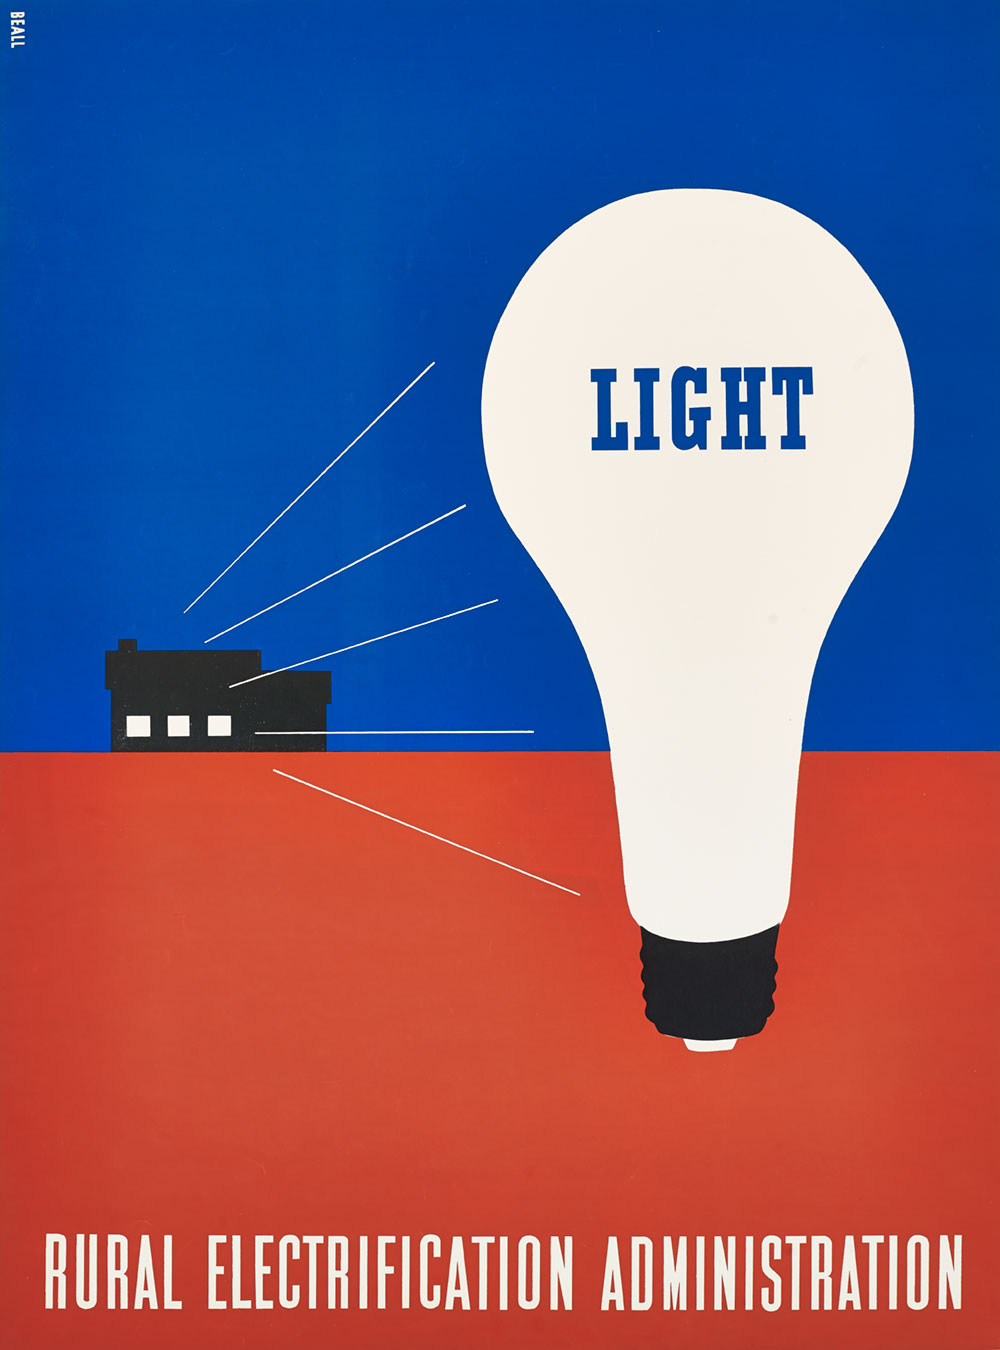 Rural Electrification Administration poster with a large white light bulb